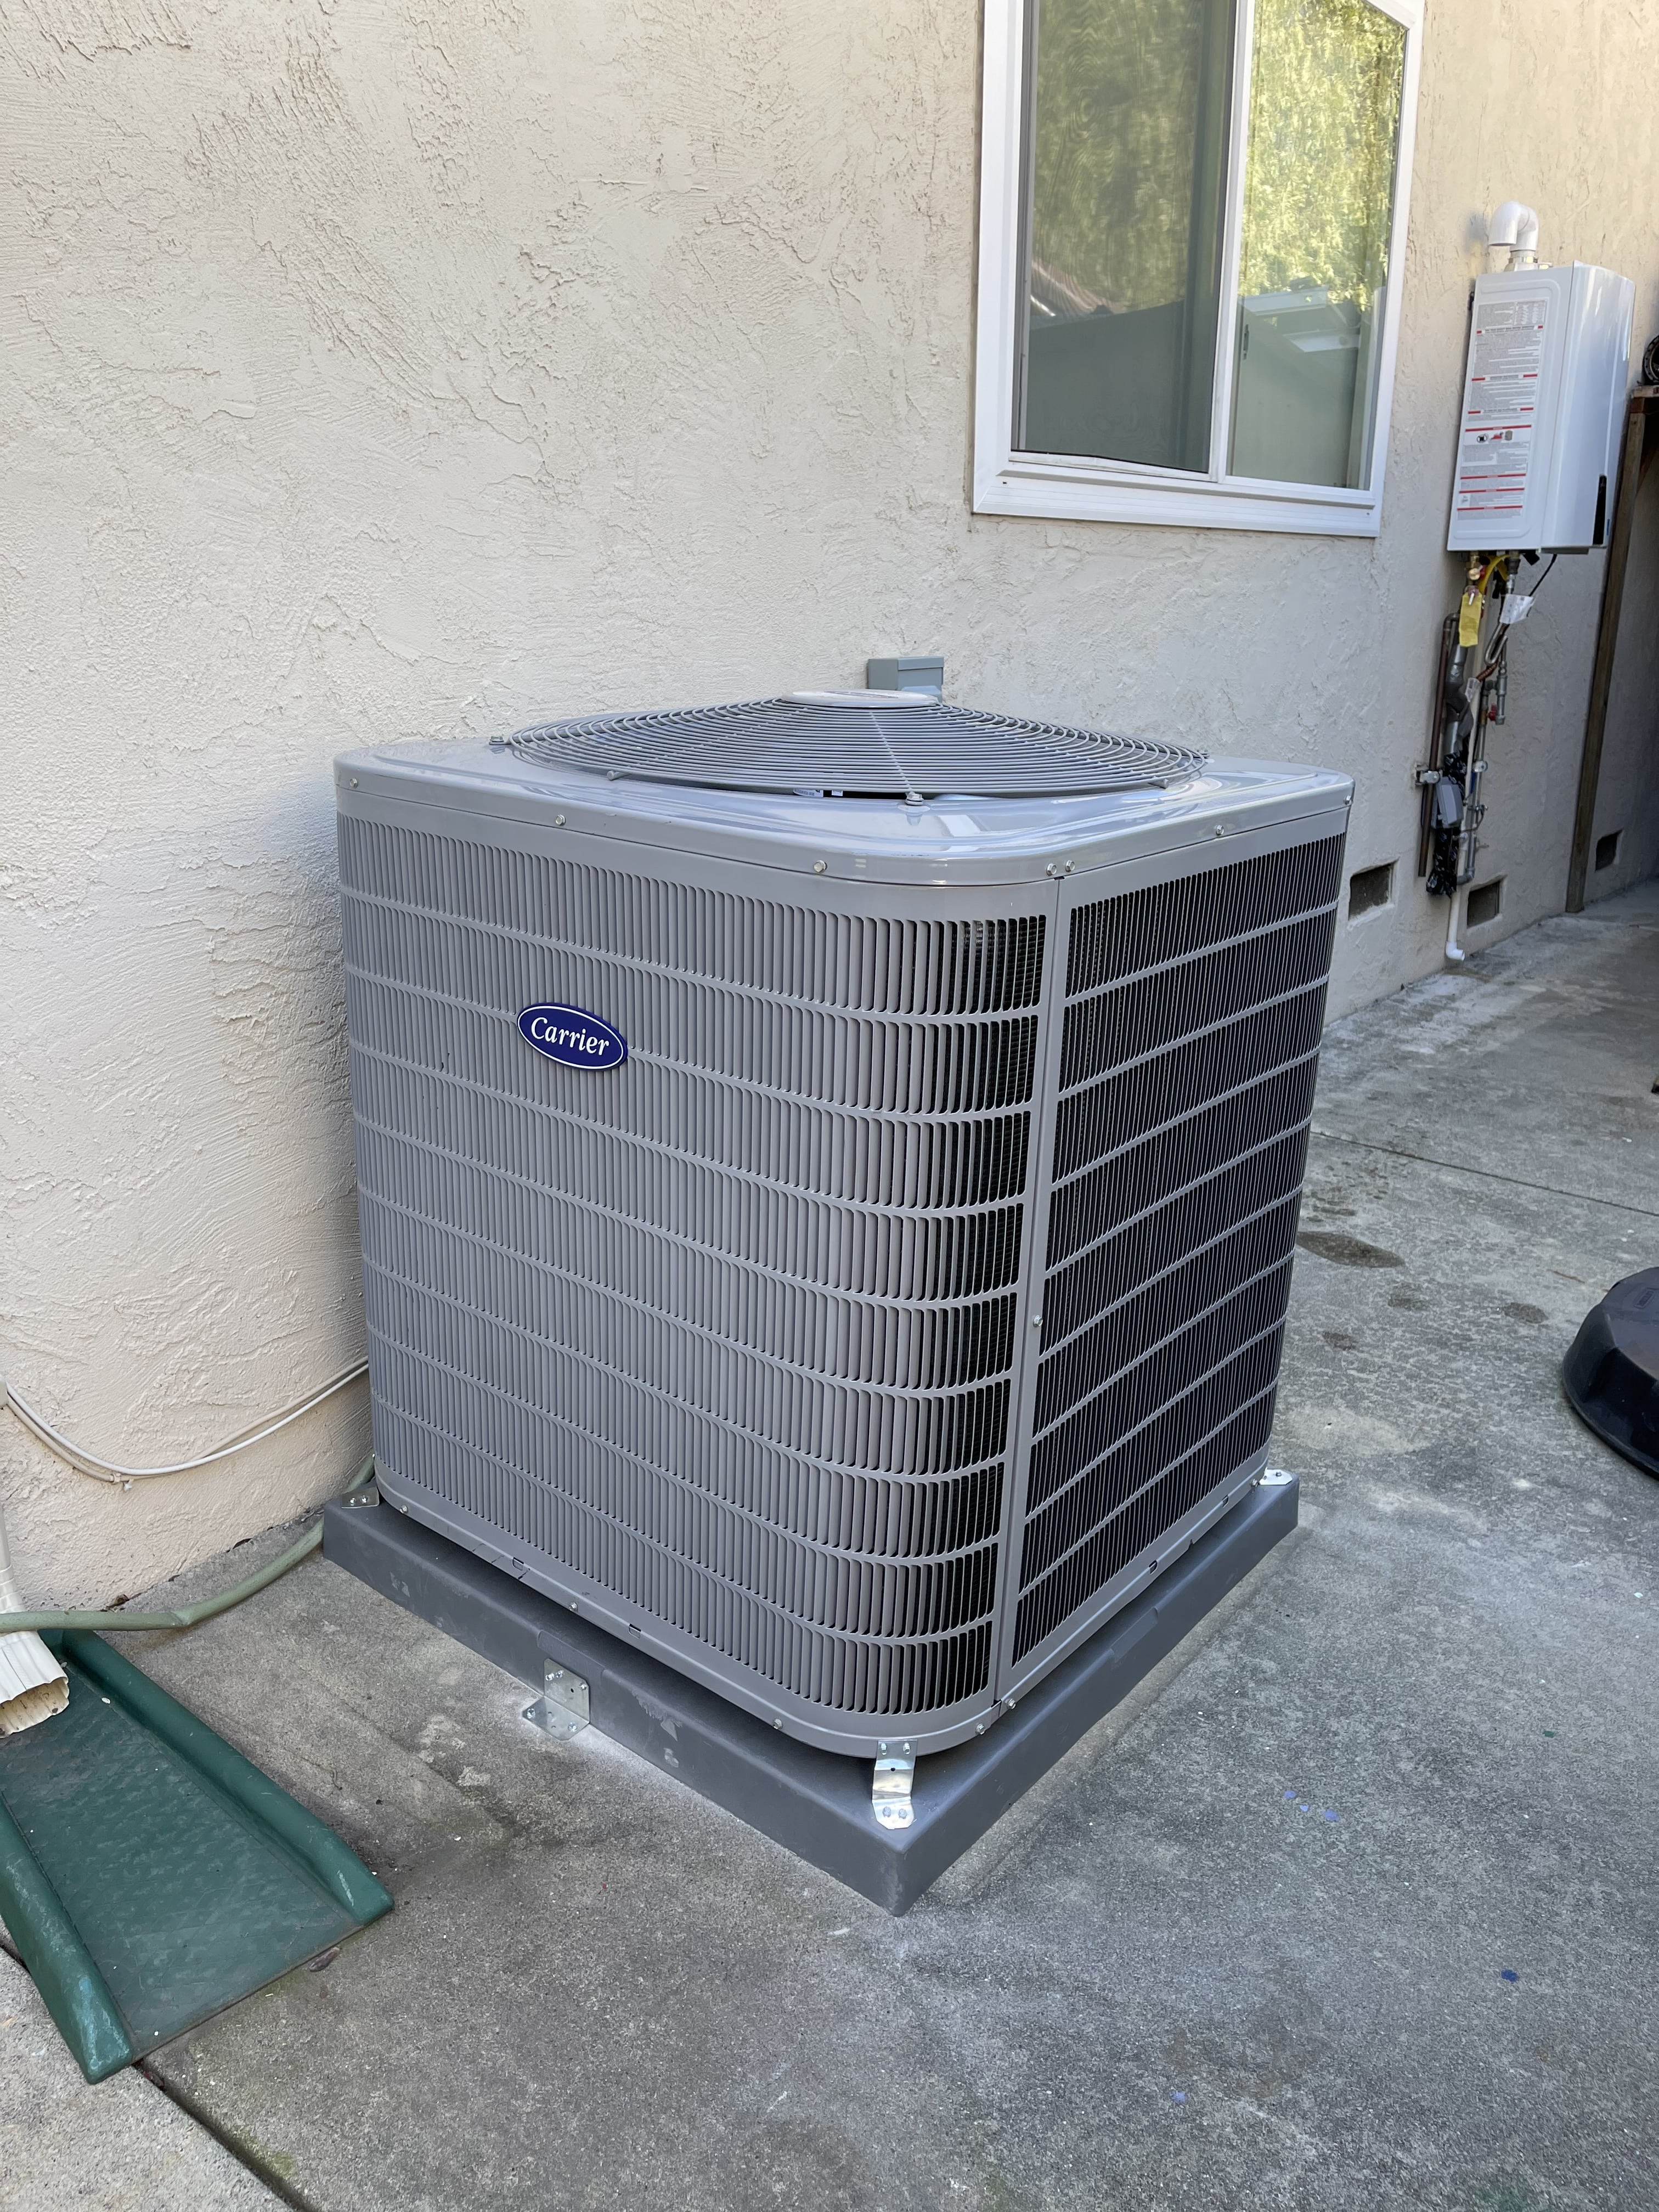 New Furnace and A/C Replacement Fremont, CA